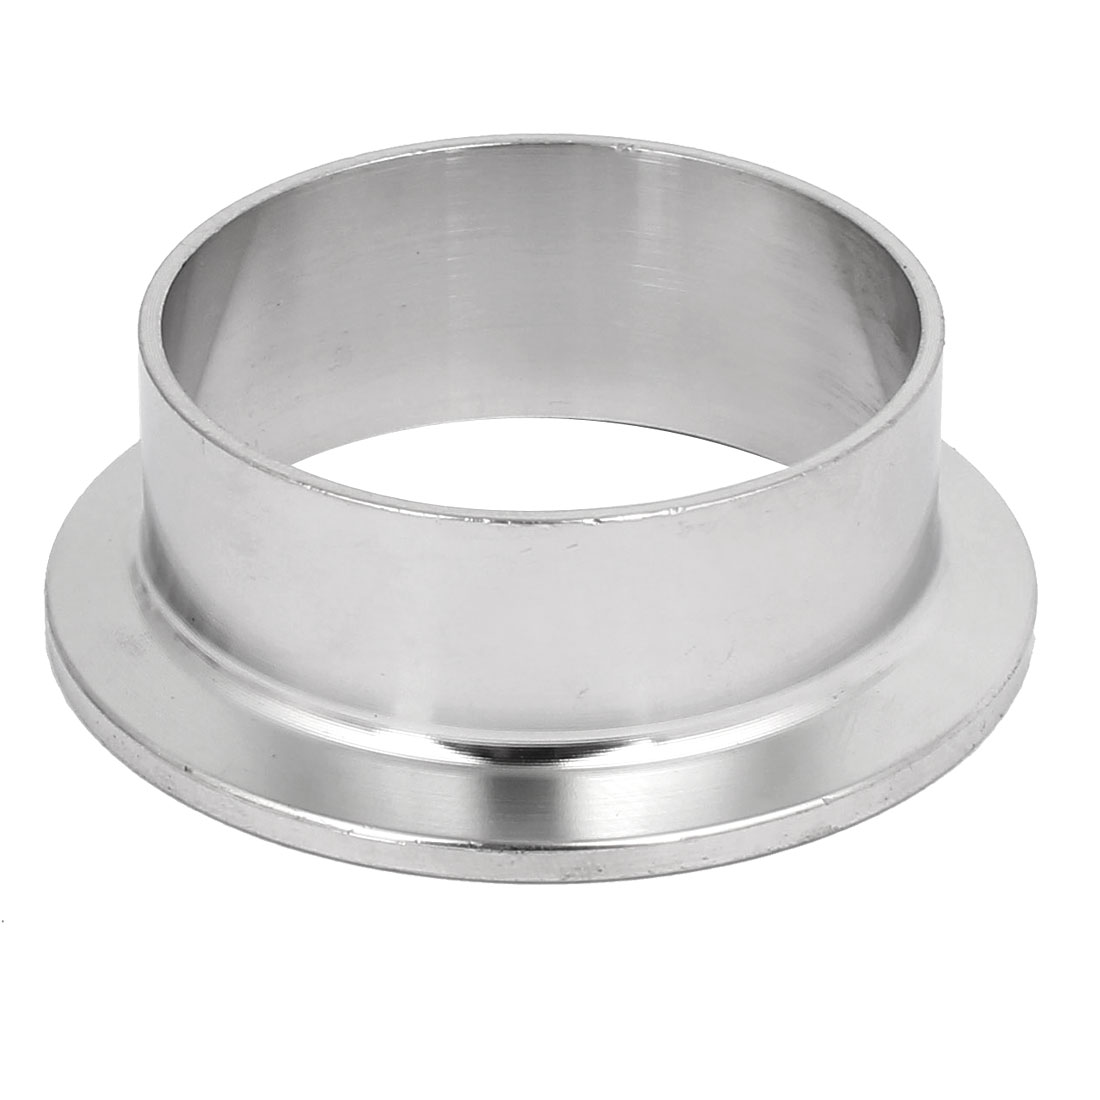 304 Stainless Steel 51mm OD Sanitary Pipe Weld on Ferrule Fits 2 Tri Clamp a set 51mm 2 sanitary tri clamp weld ferrule tri clamp silicon gasket end cap 304 stainless steel